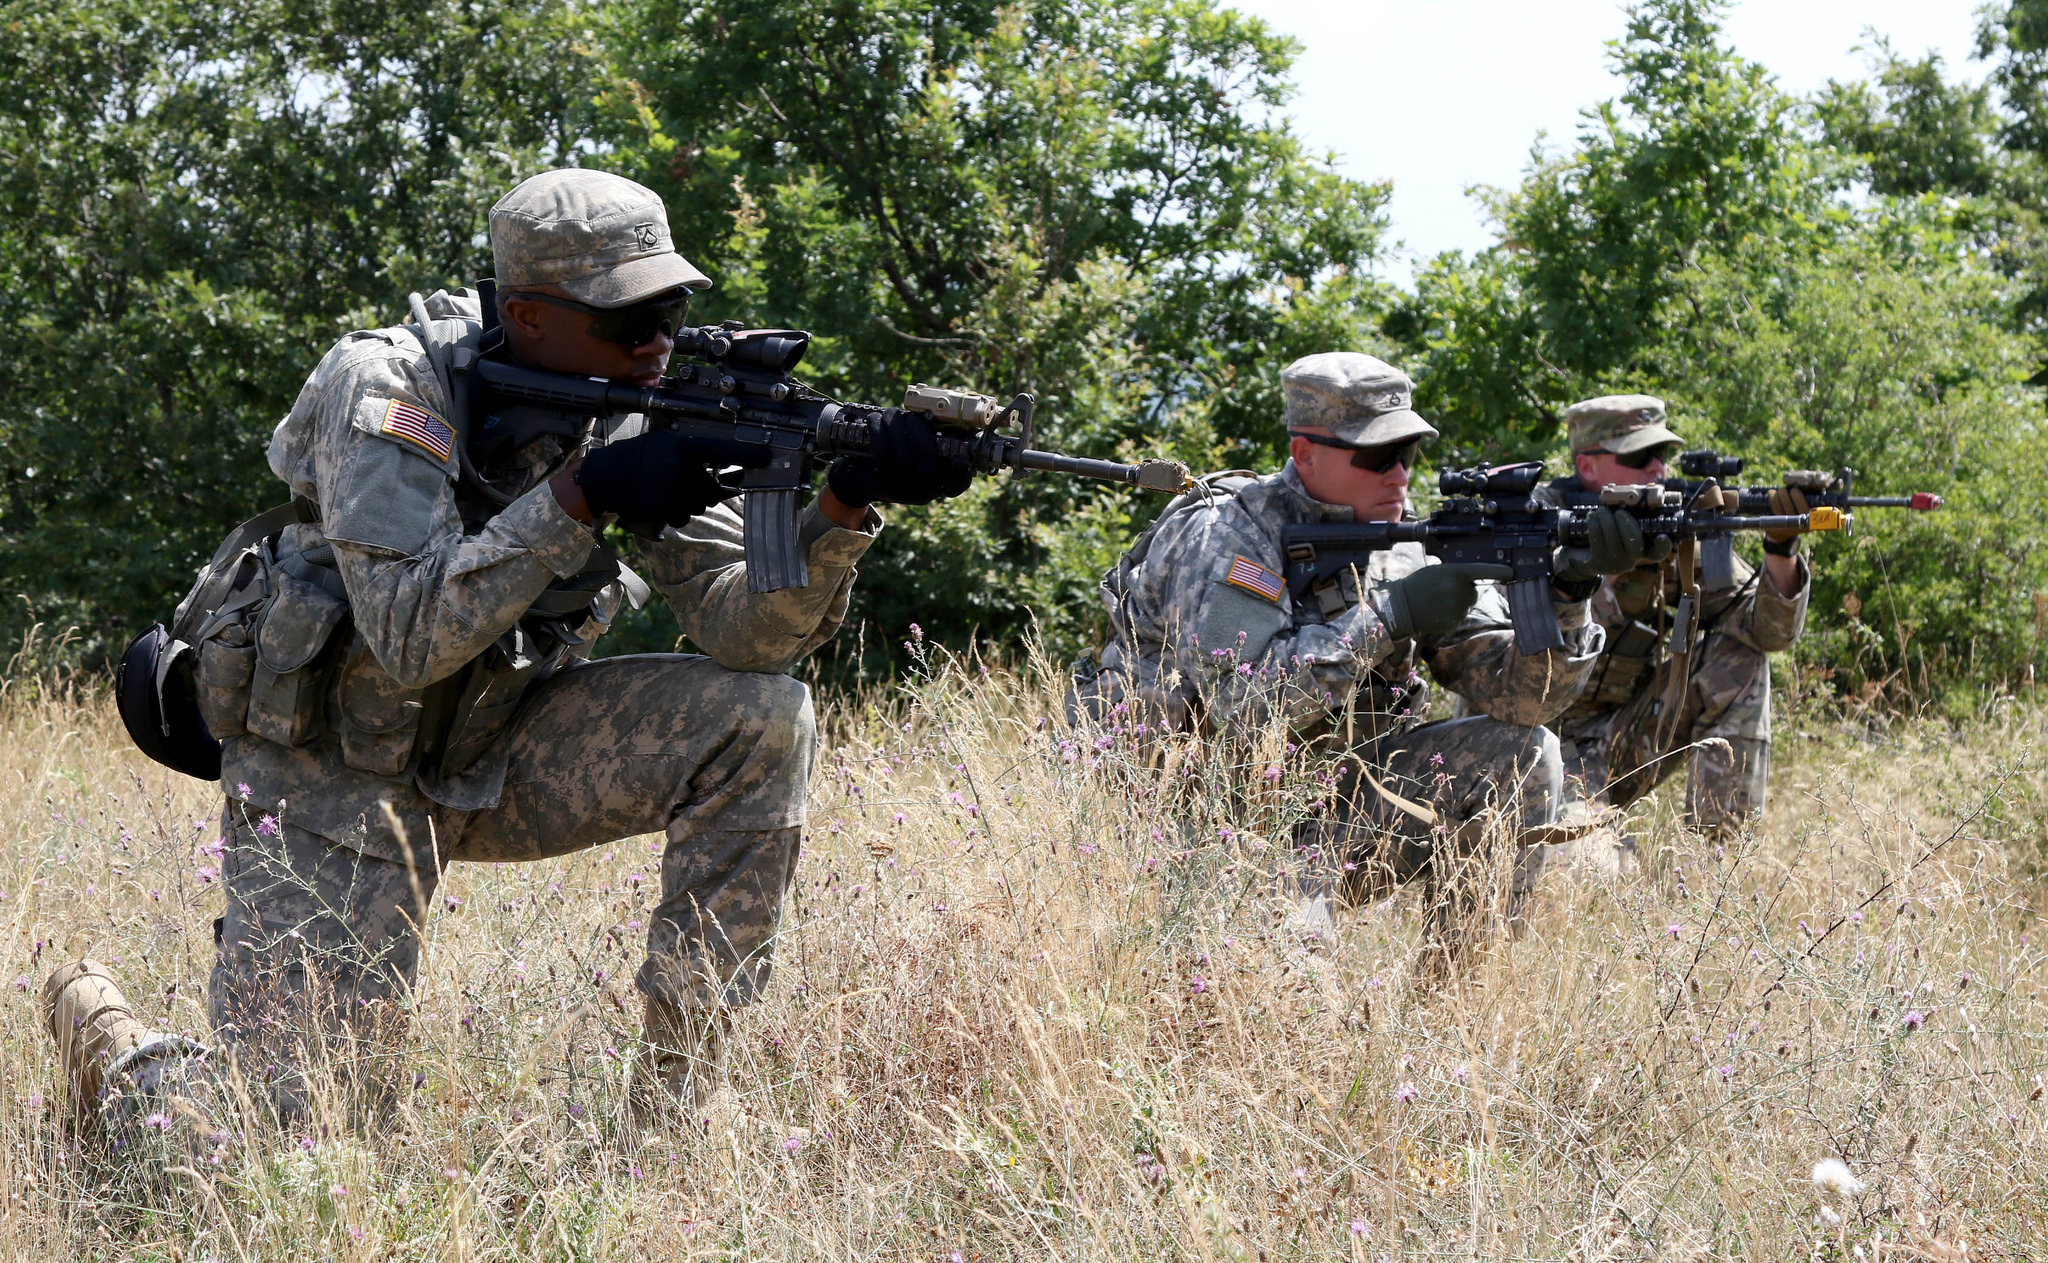 Soldiers from the 1st Battalion, 41st Infantry Regiment, 2nd Infantry Brigade Combat Team, get on line and engage an enemy target during a squad-level situational training exercise held in Dumnice, Kosovo, July 25, 2016. The purpose of the exercise was to train individual squad movements in preparation for a larger scale operation deemed Iron Eagle, later this year. (U.S. Army photo by: Staff Sgt. Thomas Duval, Multinational Battle Group-East Public Affairs)